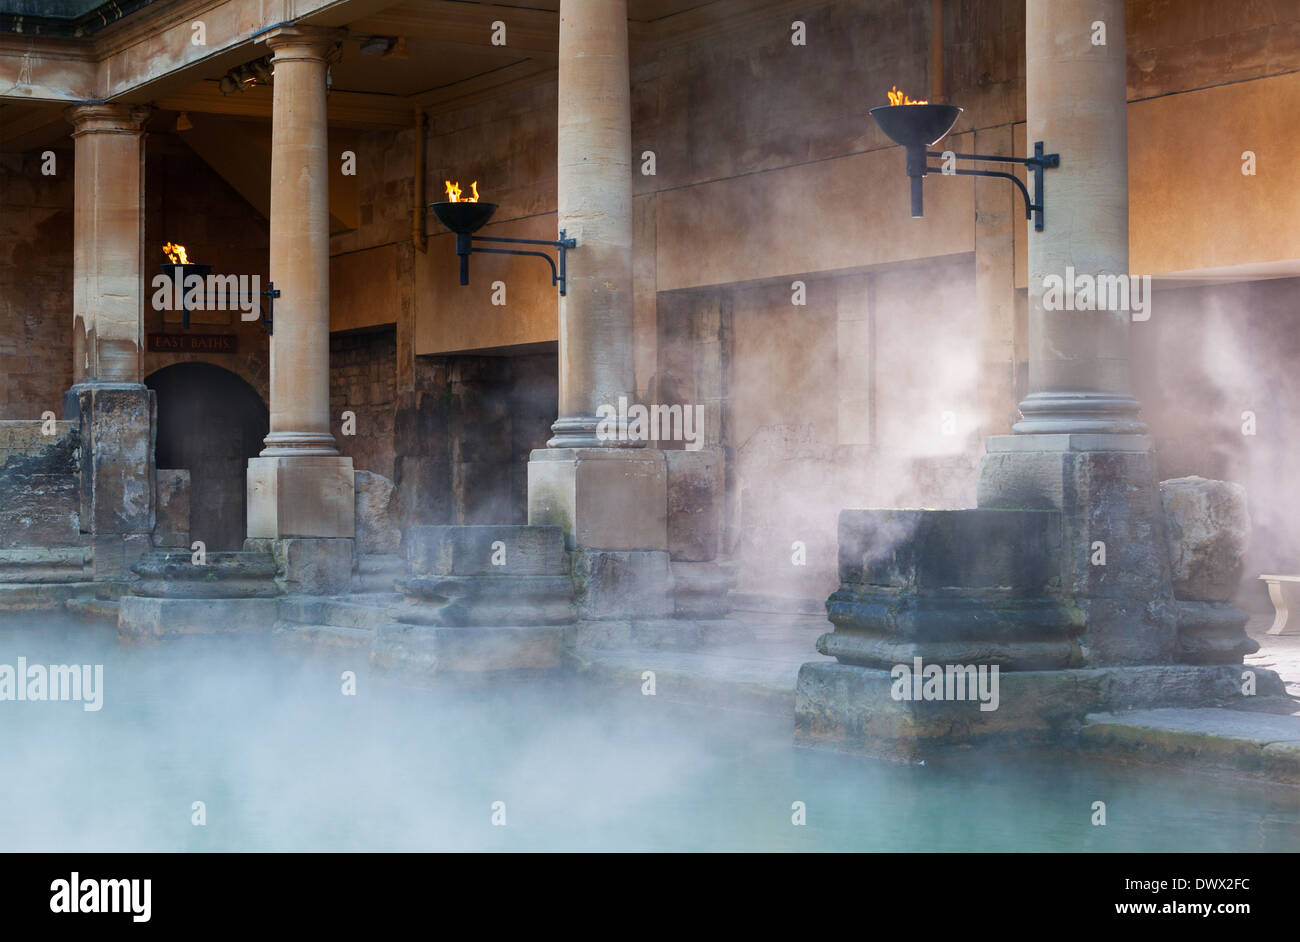 Mist rising off the hot spa water in the Great Bath, part of the Roman Baths in Bath, UK - Stock Image